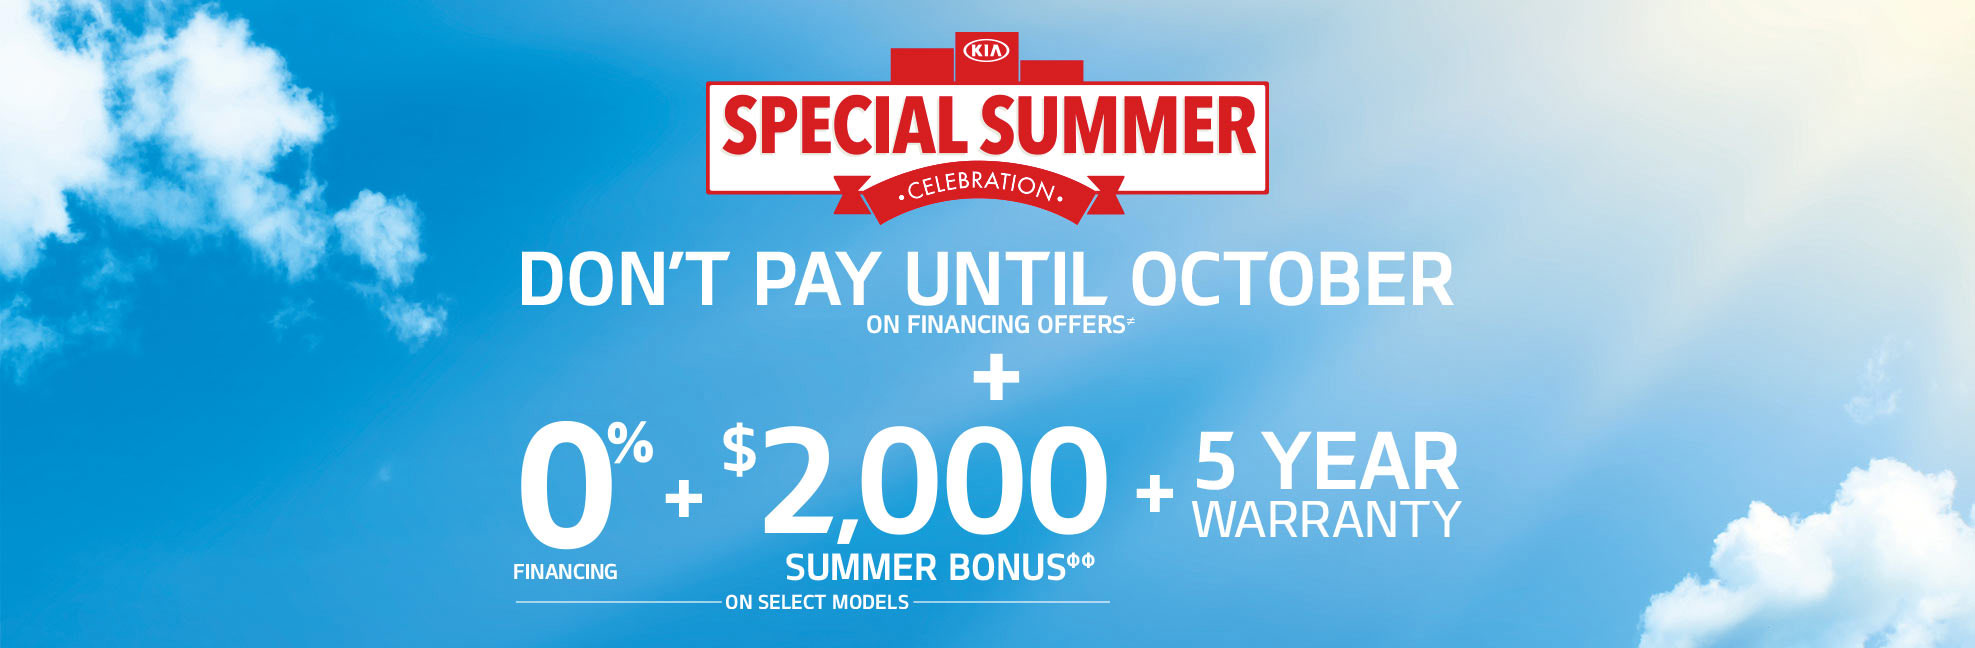 Special Summer Celebration - Don't Pay Until October Kingston Kia